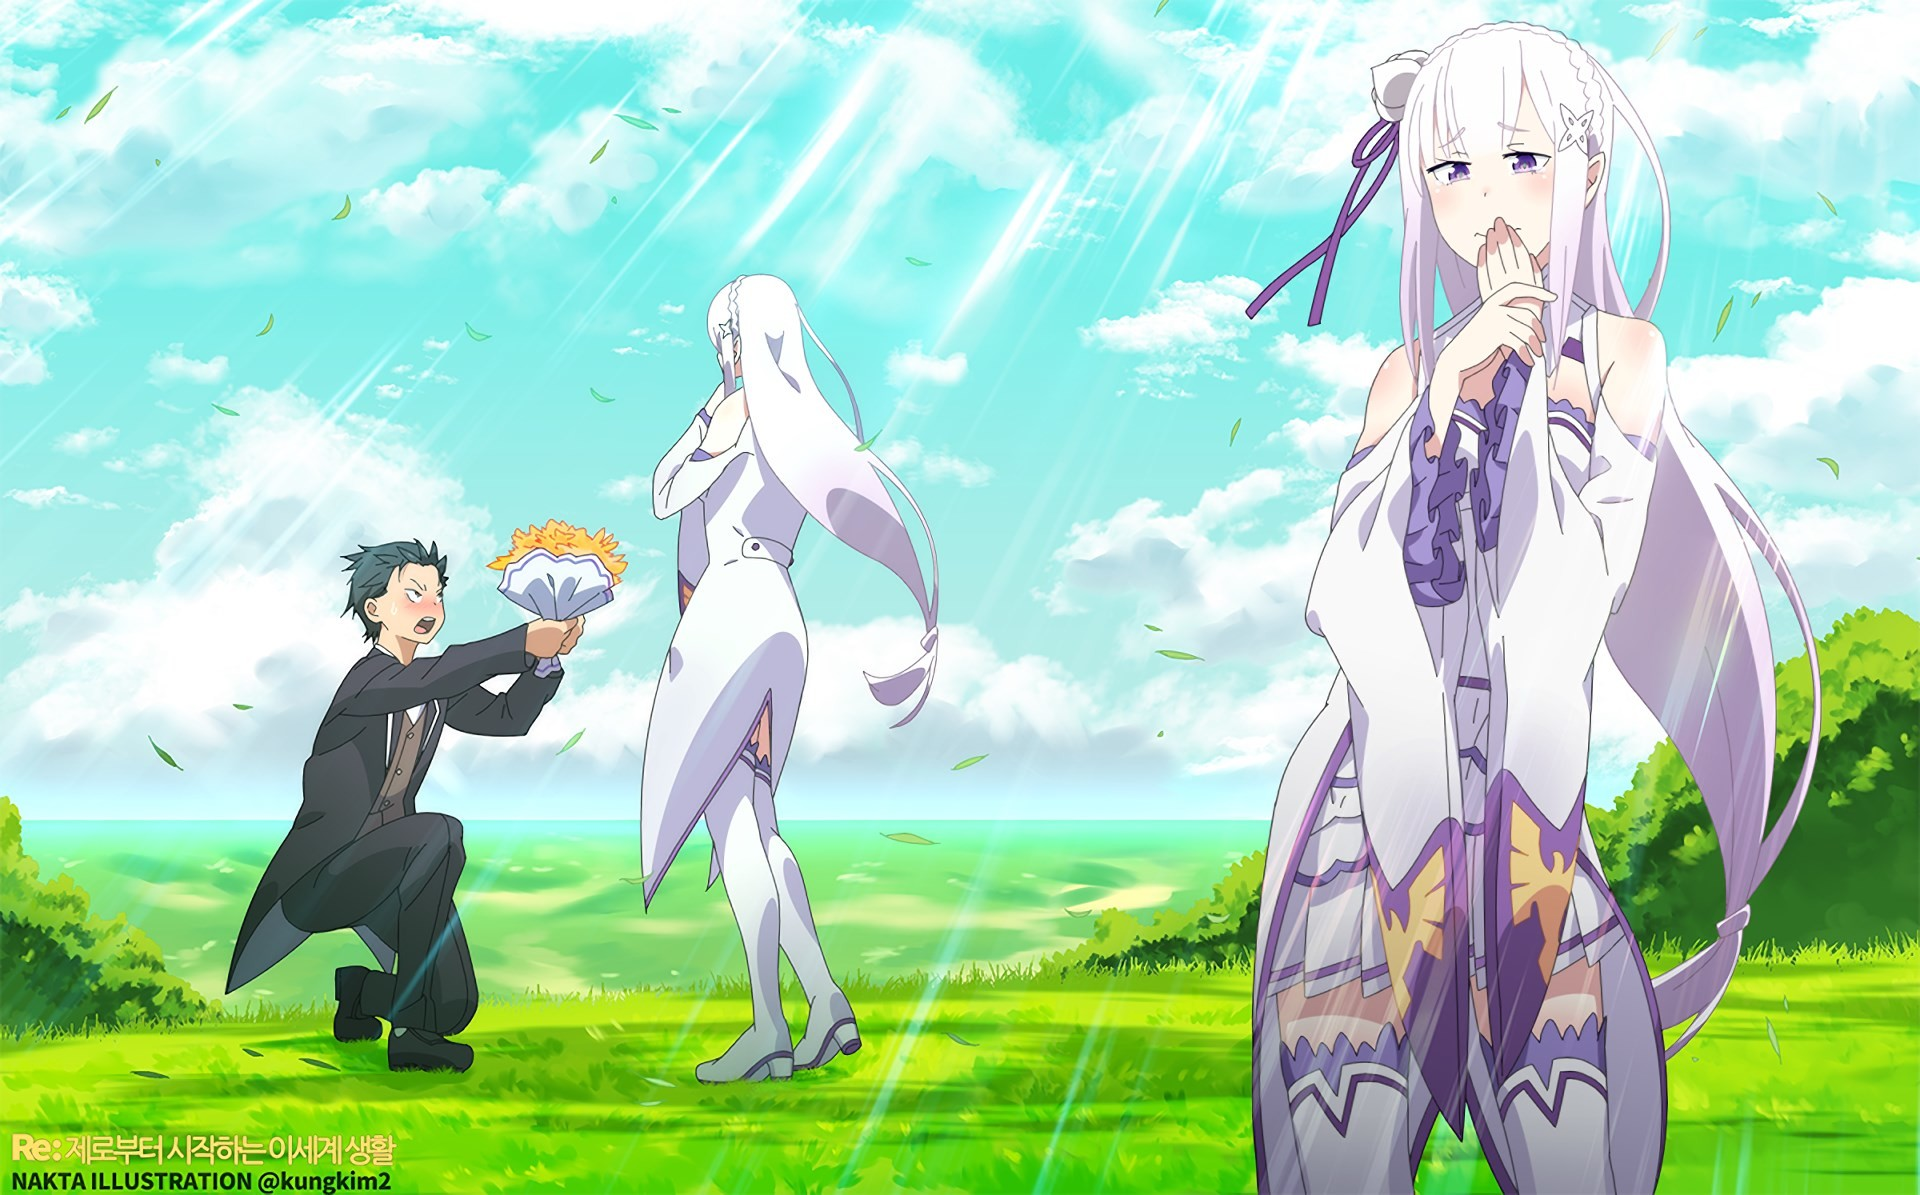 1920x1195 rezero starting life in another world wallpaper: High Definition Backgrounds  - rezero starting life in